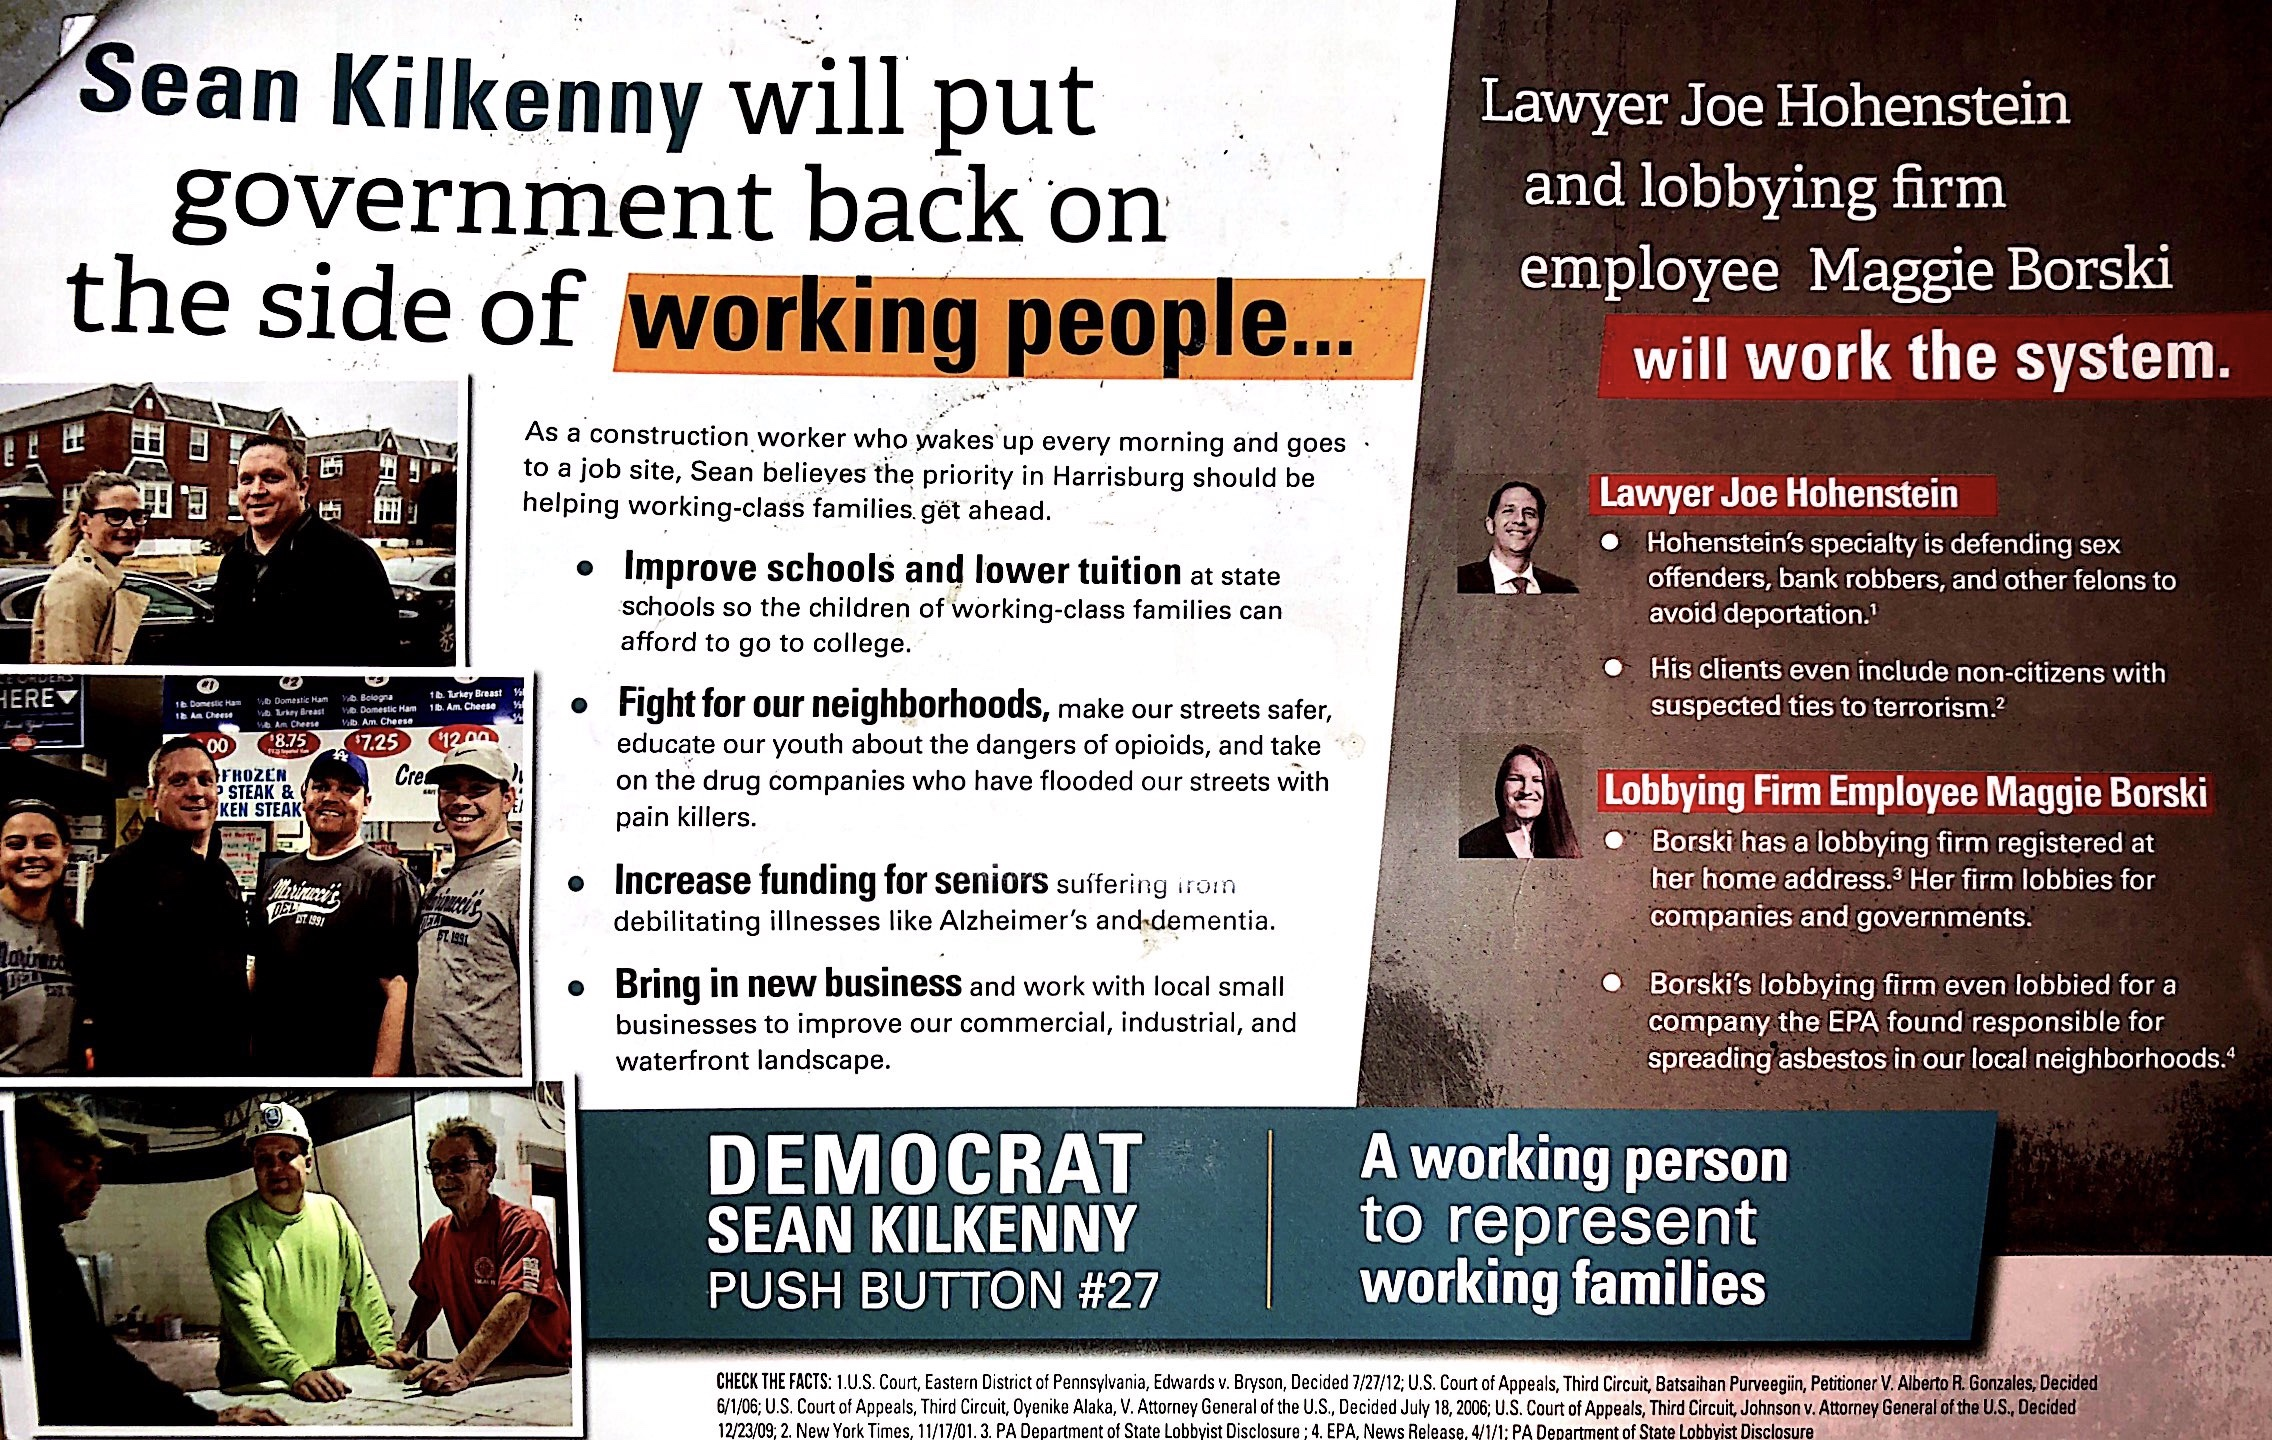 "Democrat Joseph Hohenstein said his opponent Sean Kilkennys ads are ""racially charged."" Kilkennys campaign stood by the flyers."